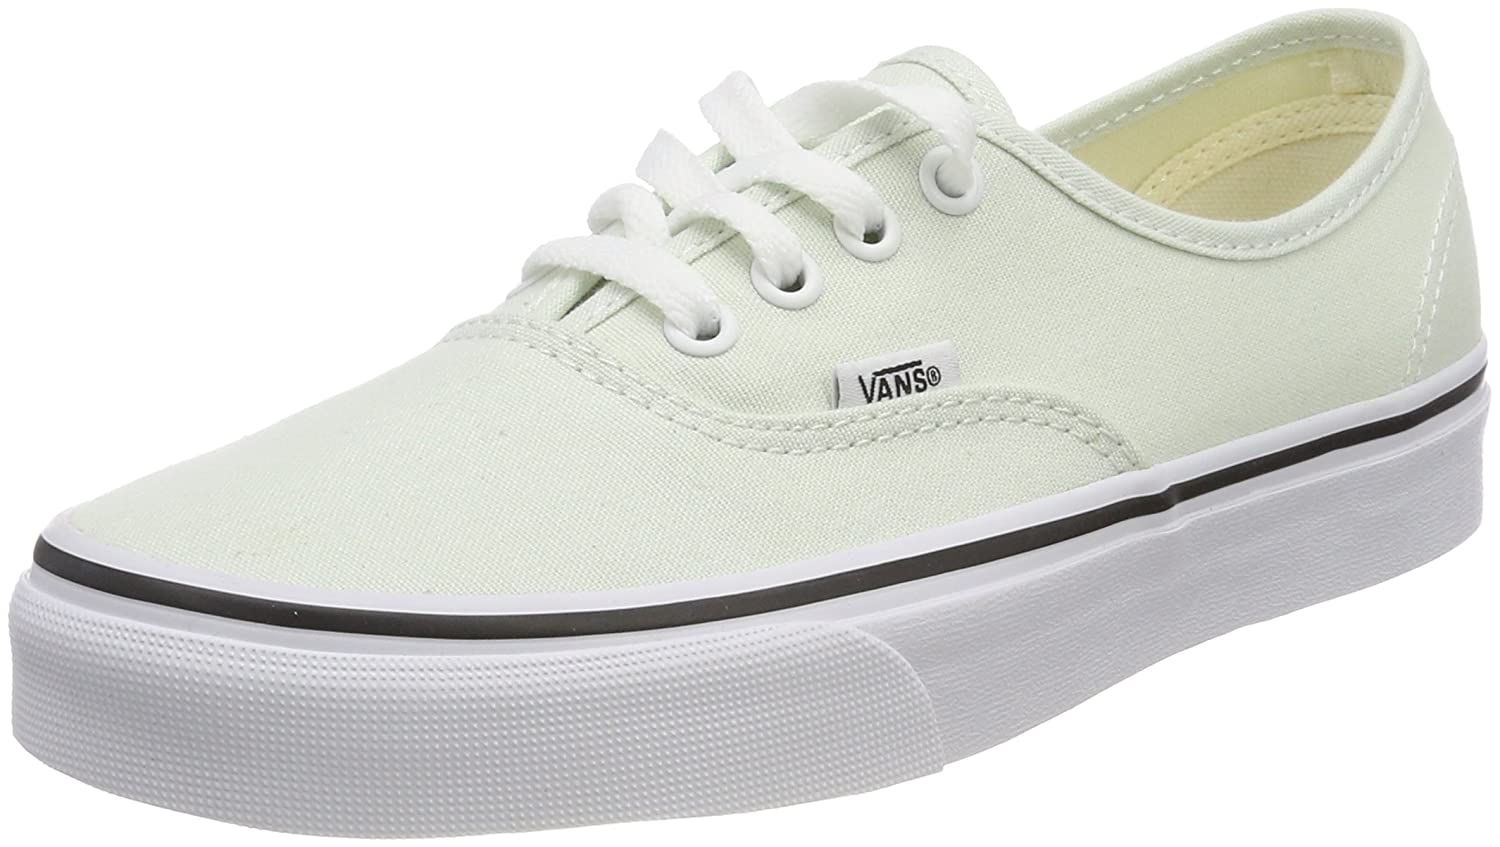 柔らかな質感の [バンズ] スニーカー Women's M Women's AUTHENTIC (Pig Suede) (Blue VN0A38EMU5O レディース B078W3RVNC 6.5 M US|Green (Blue Flower/True White Q6l) Green (Blue Flower/True White Q6l) 6.5 M US, タカトオマチ:ecfe37a5 --- svecha37.ru